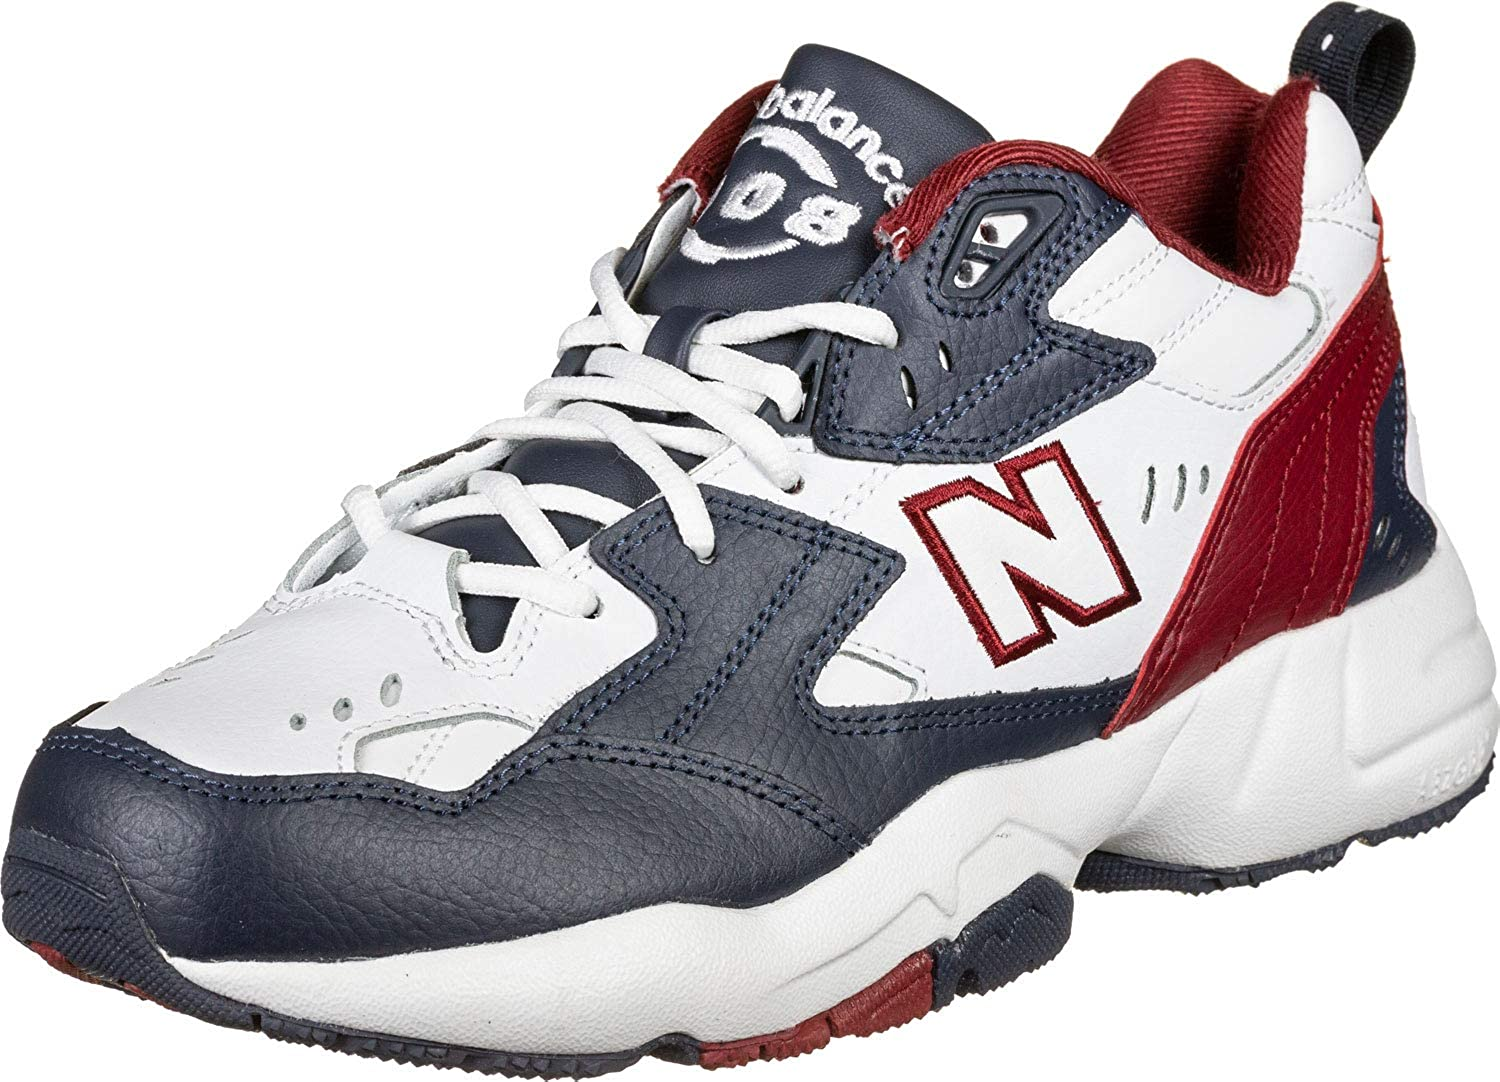 New Balance 608 BR1 Outerspace MX608BR1, Trainers White